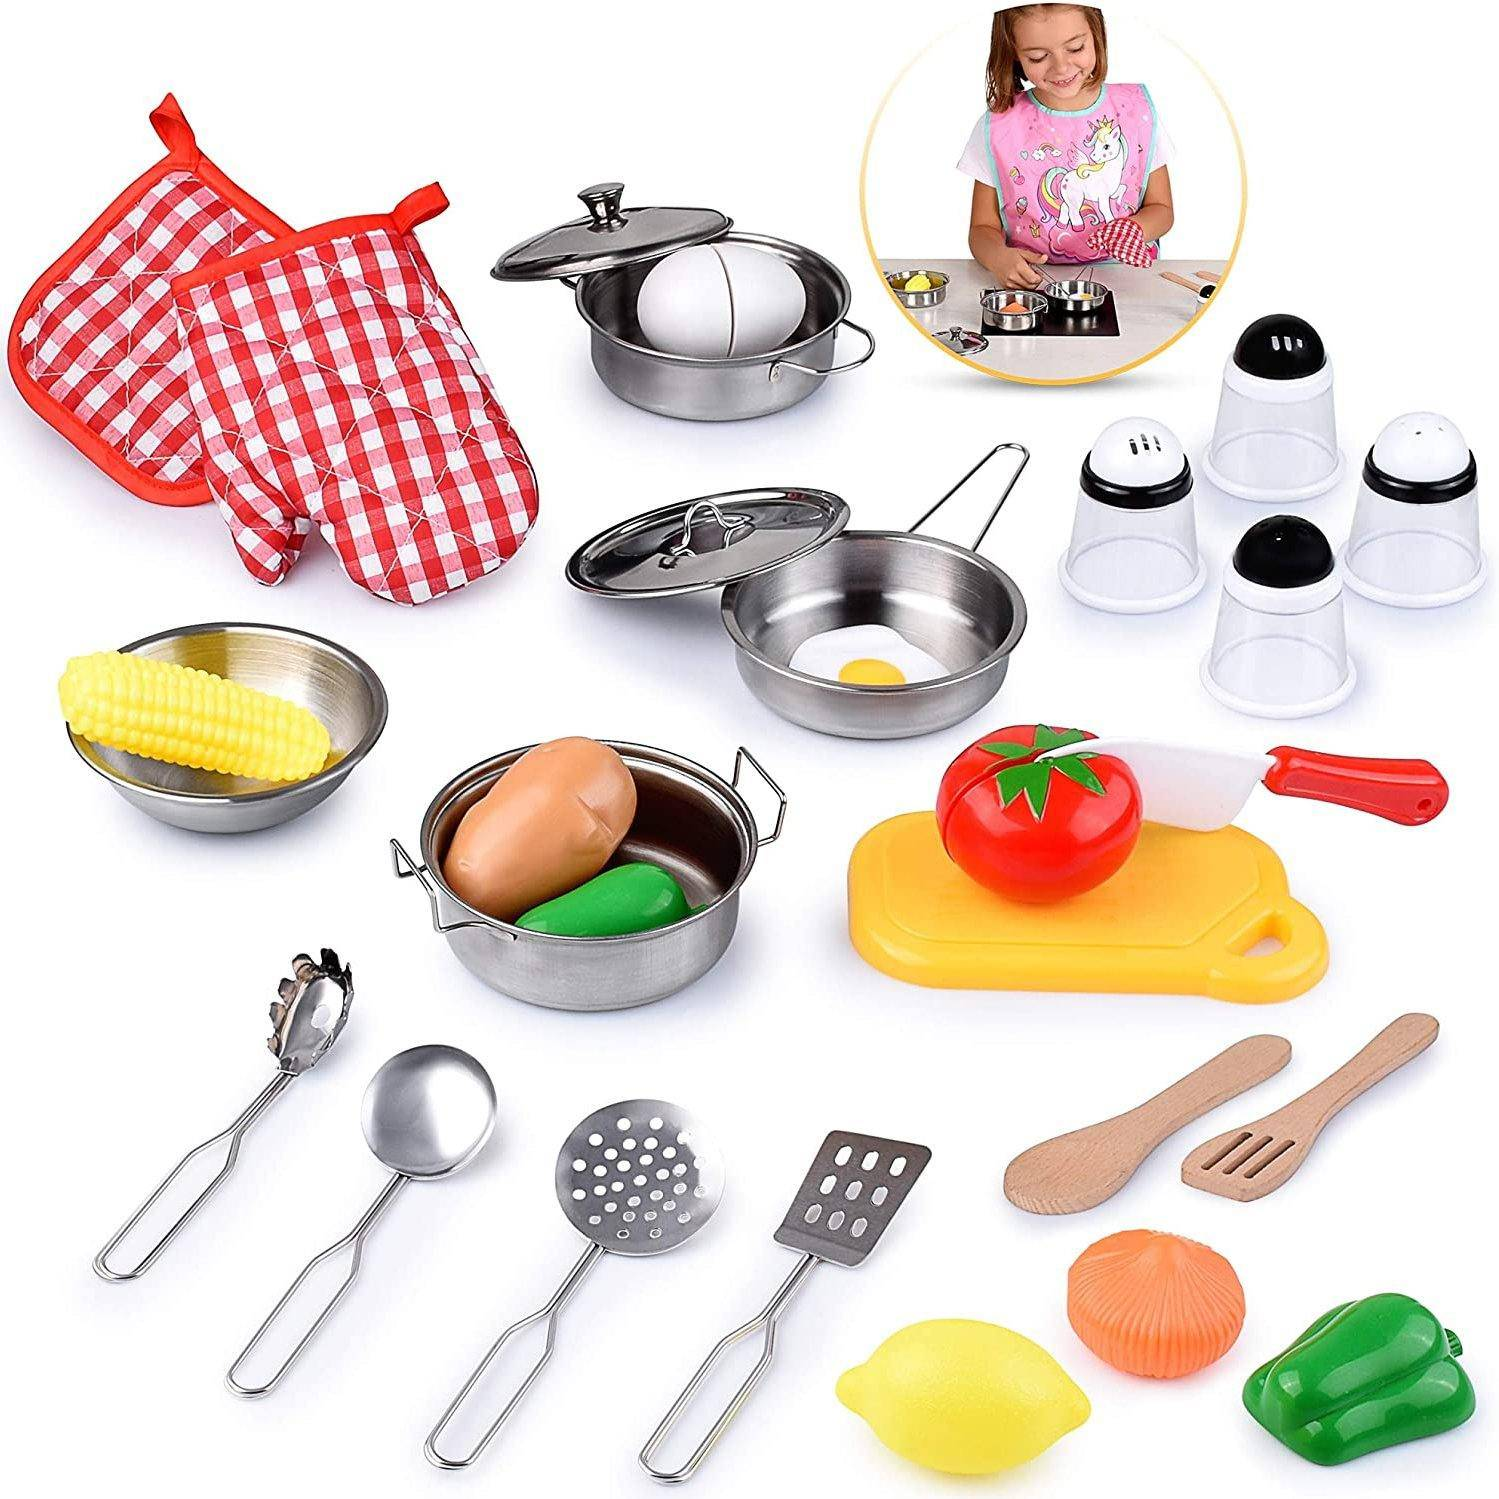 Kids Kitchen Toy Playset, Educational Kitchen Set Accessories For Girls And Boys